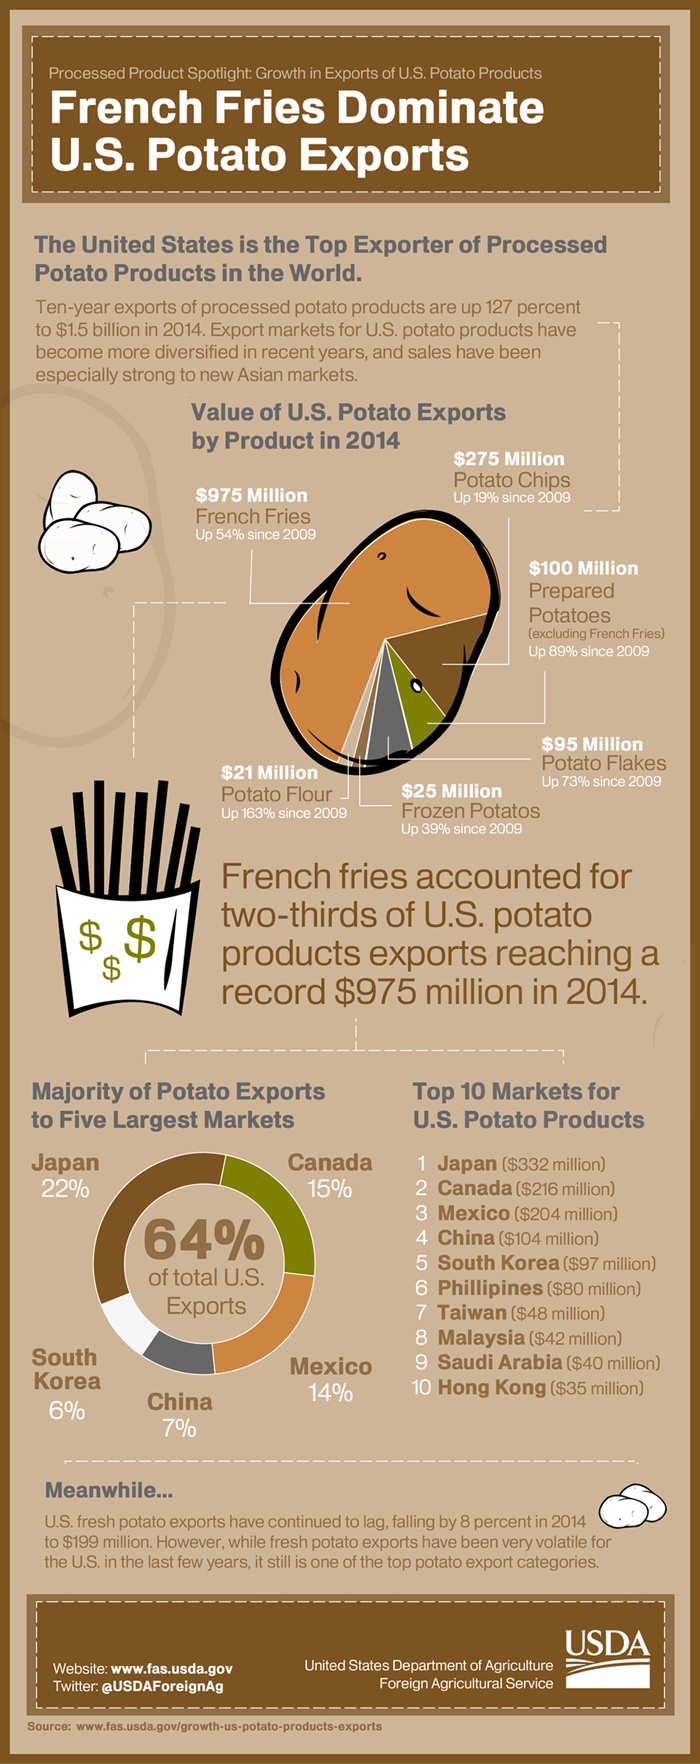 Infographic exploring the growth of U.S. potato products exports over the last 10 years.